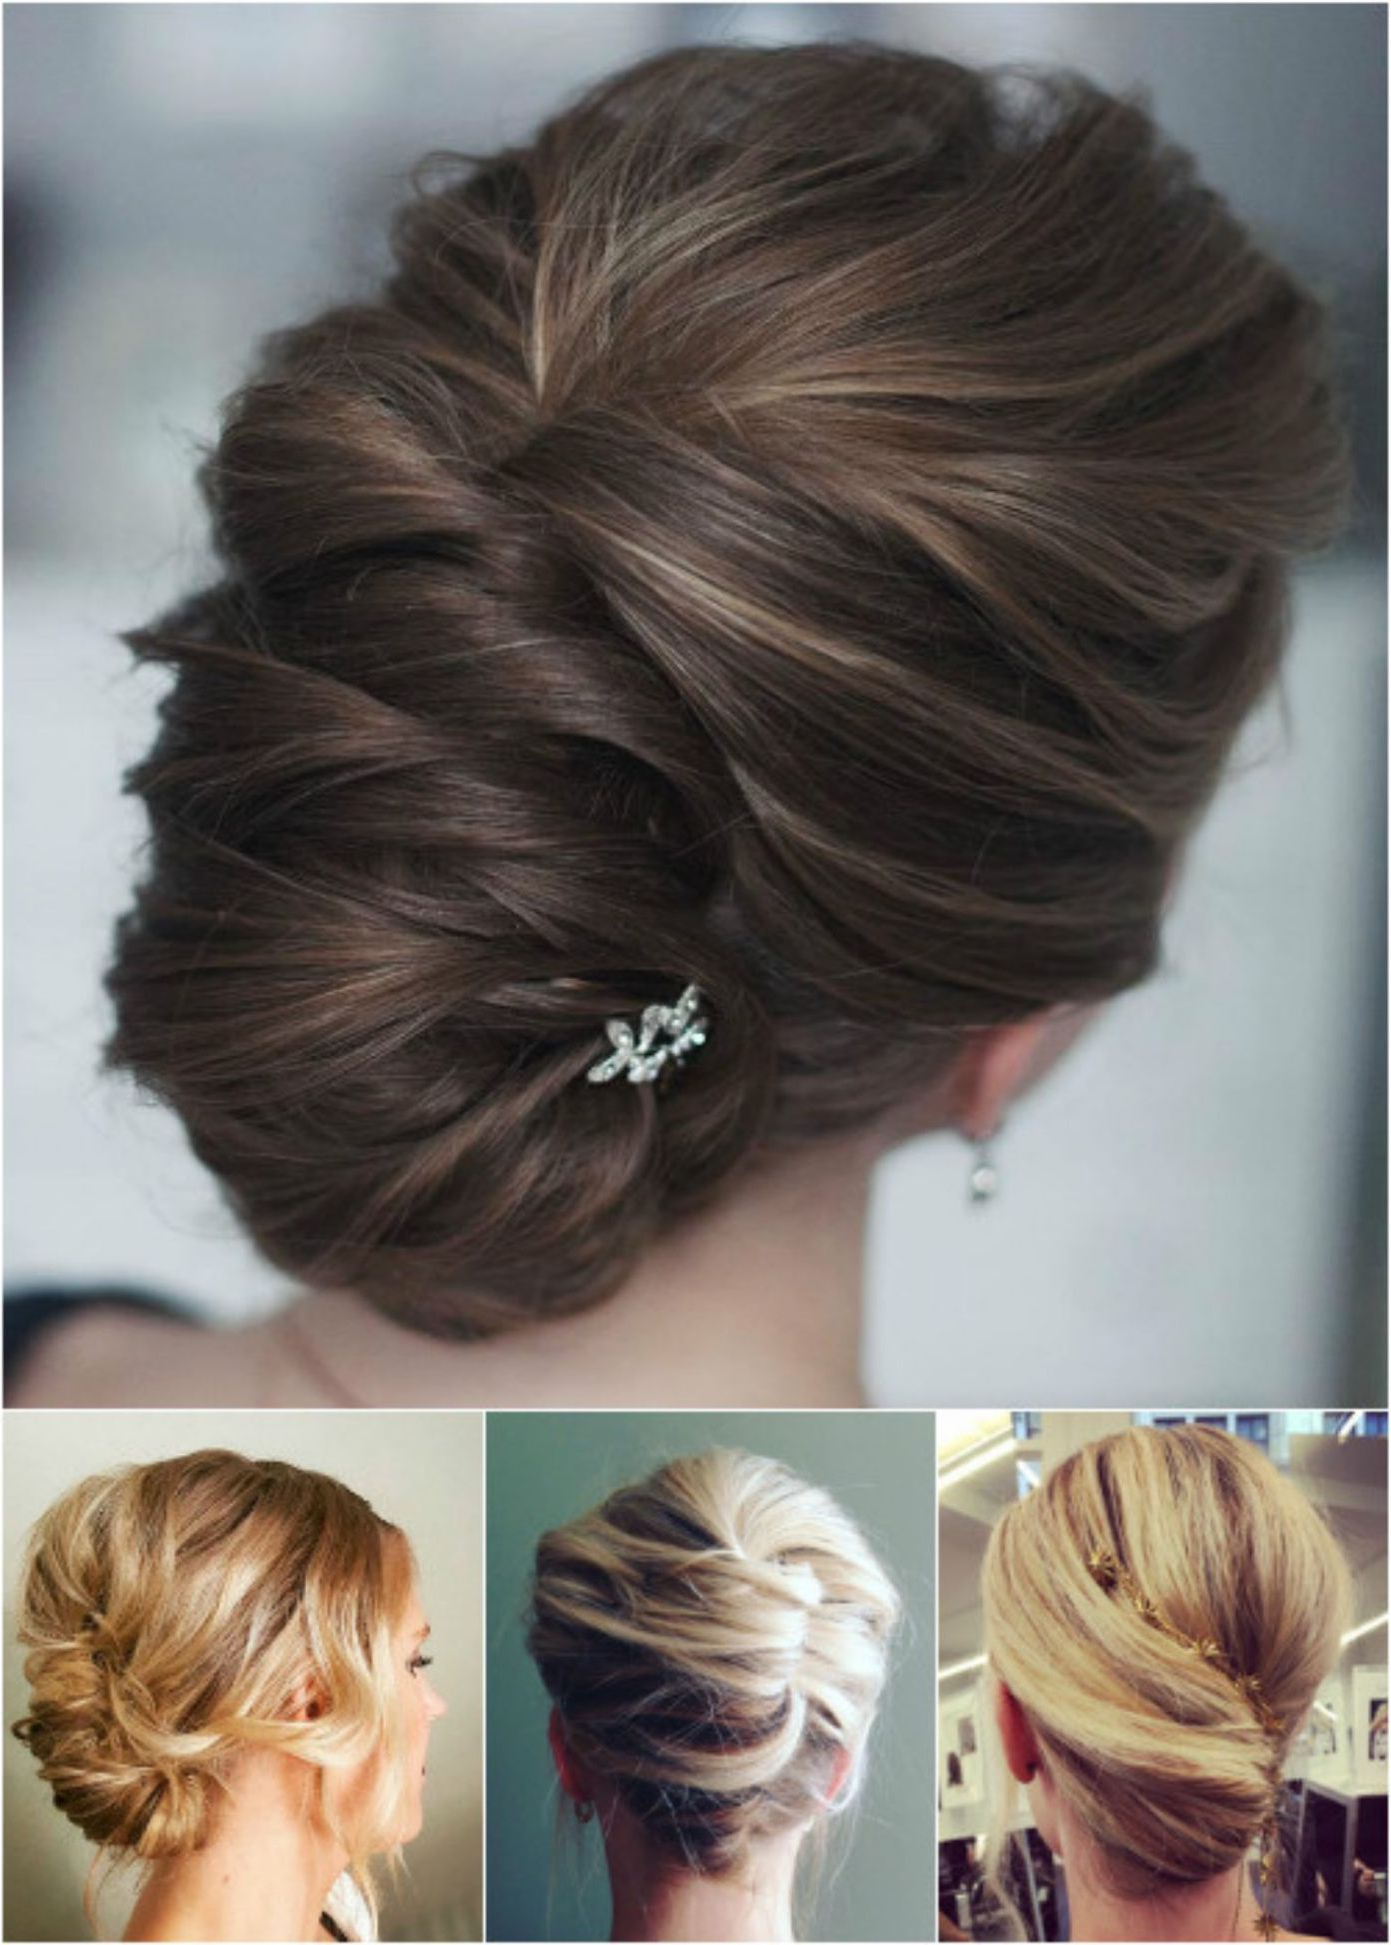 Hair Styles, Hair Throughout Most Up To Date Messy French Roll Bridal Hairstyles (Gallery 5 of 20)